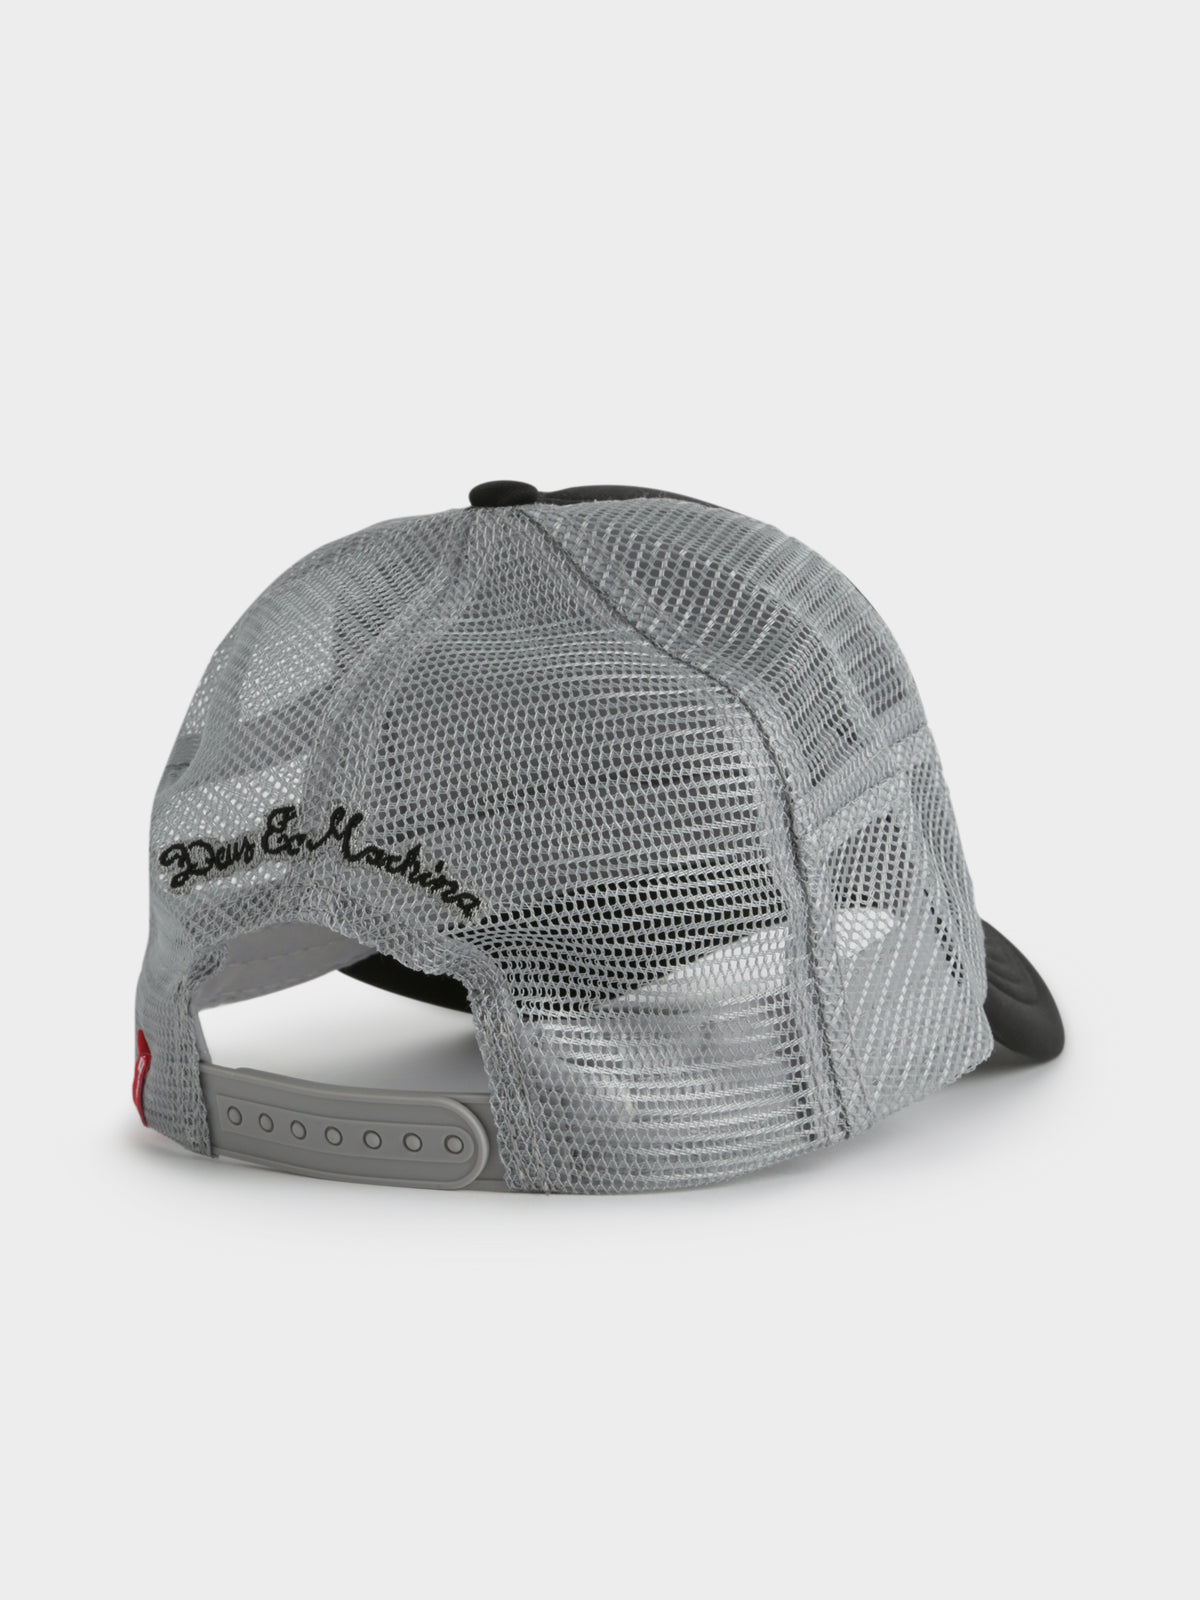 Baylands Trucket Cap in Black & Grey